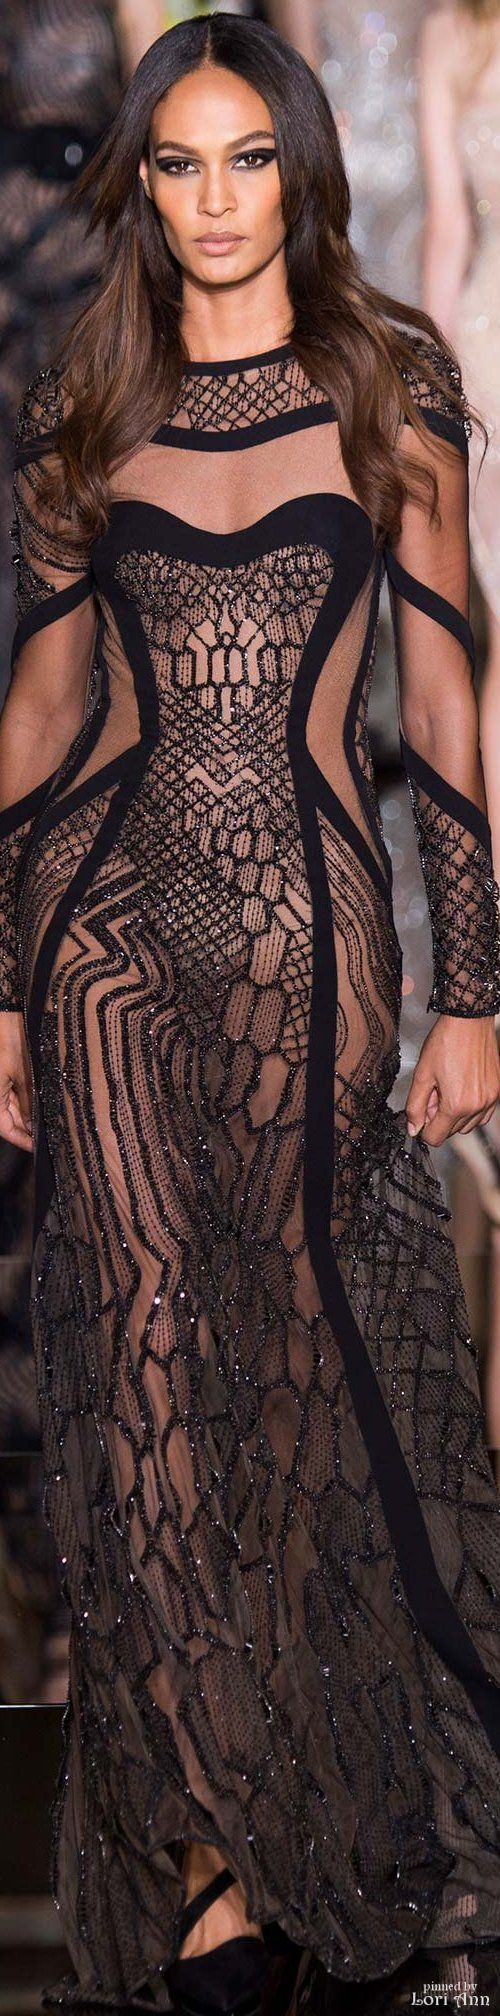 Atelier Versace Spring 2015. There is something really fantastic and unusual about this black, sheer and nude gown. Granted, one would probably need to be rather brave to wear this, but all credit where it's due if you are! It is fab.